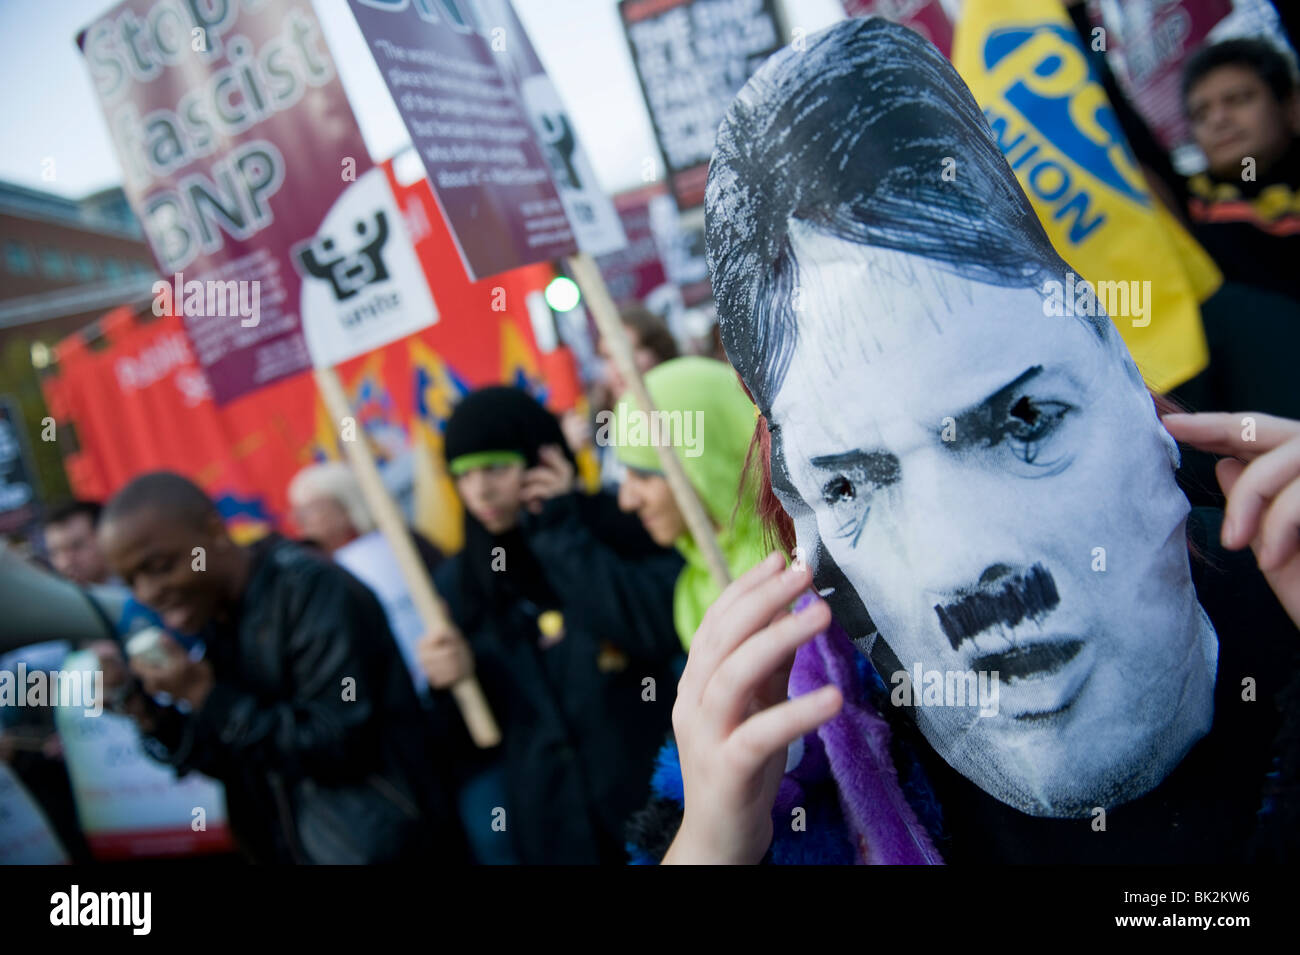 Protestors, against the inclusion of Nick Griffin of the BNP in BBC's Question Time, gather outside the Television - Stock Image